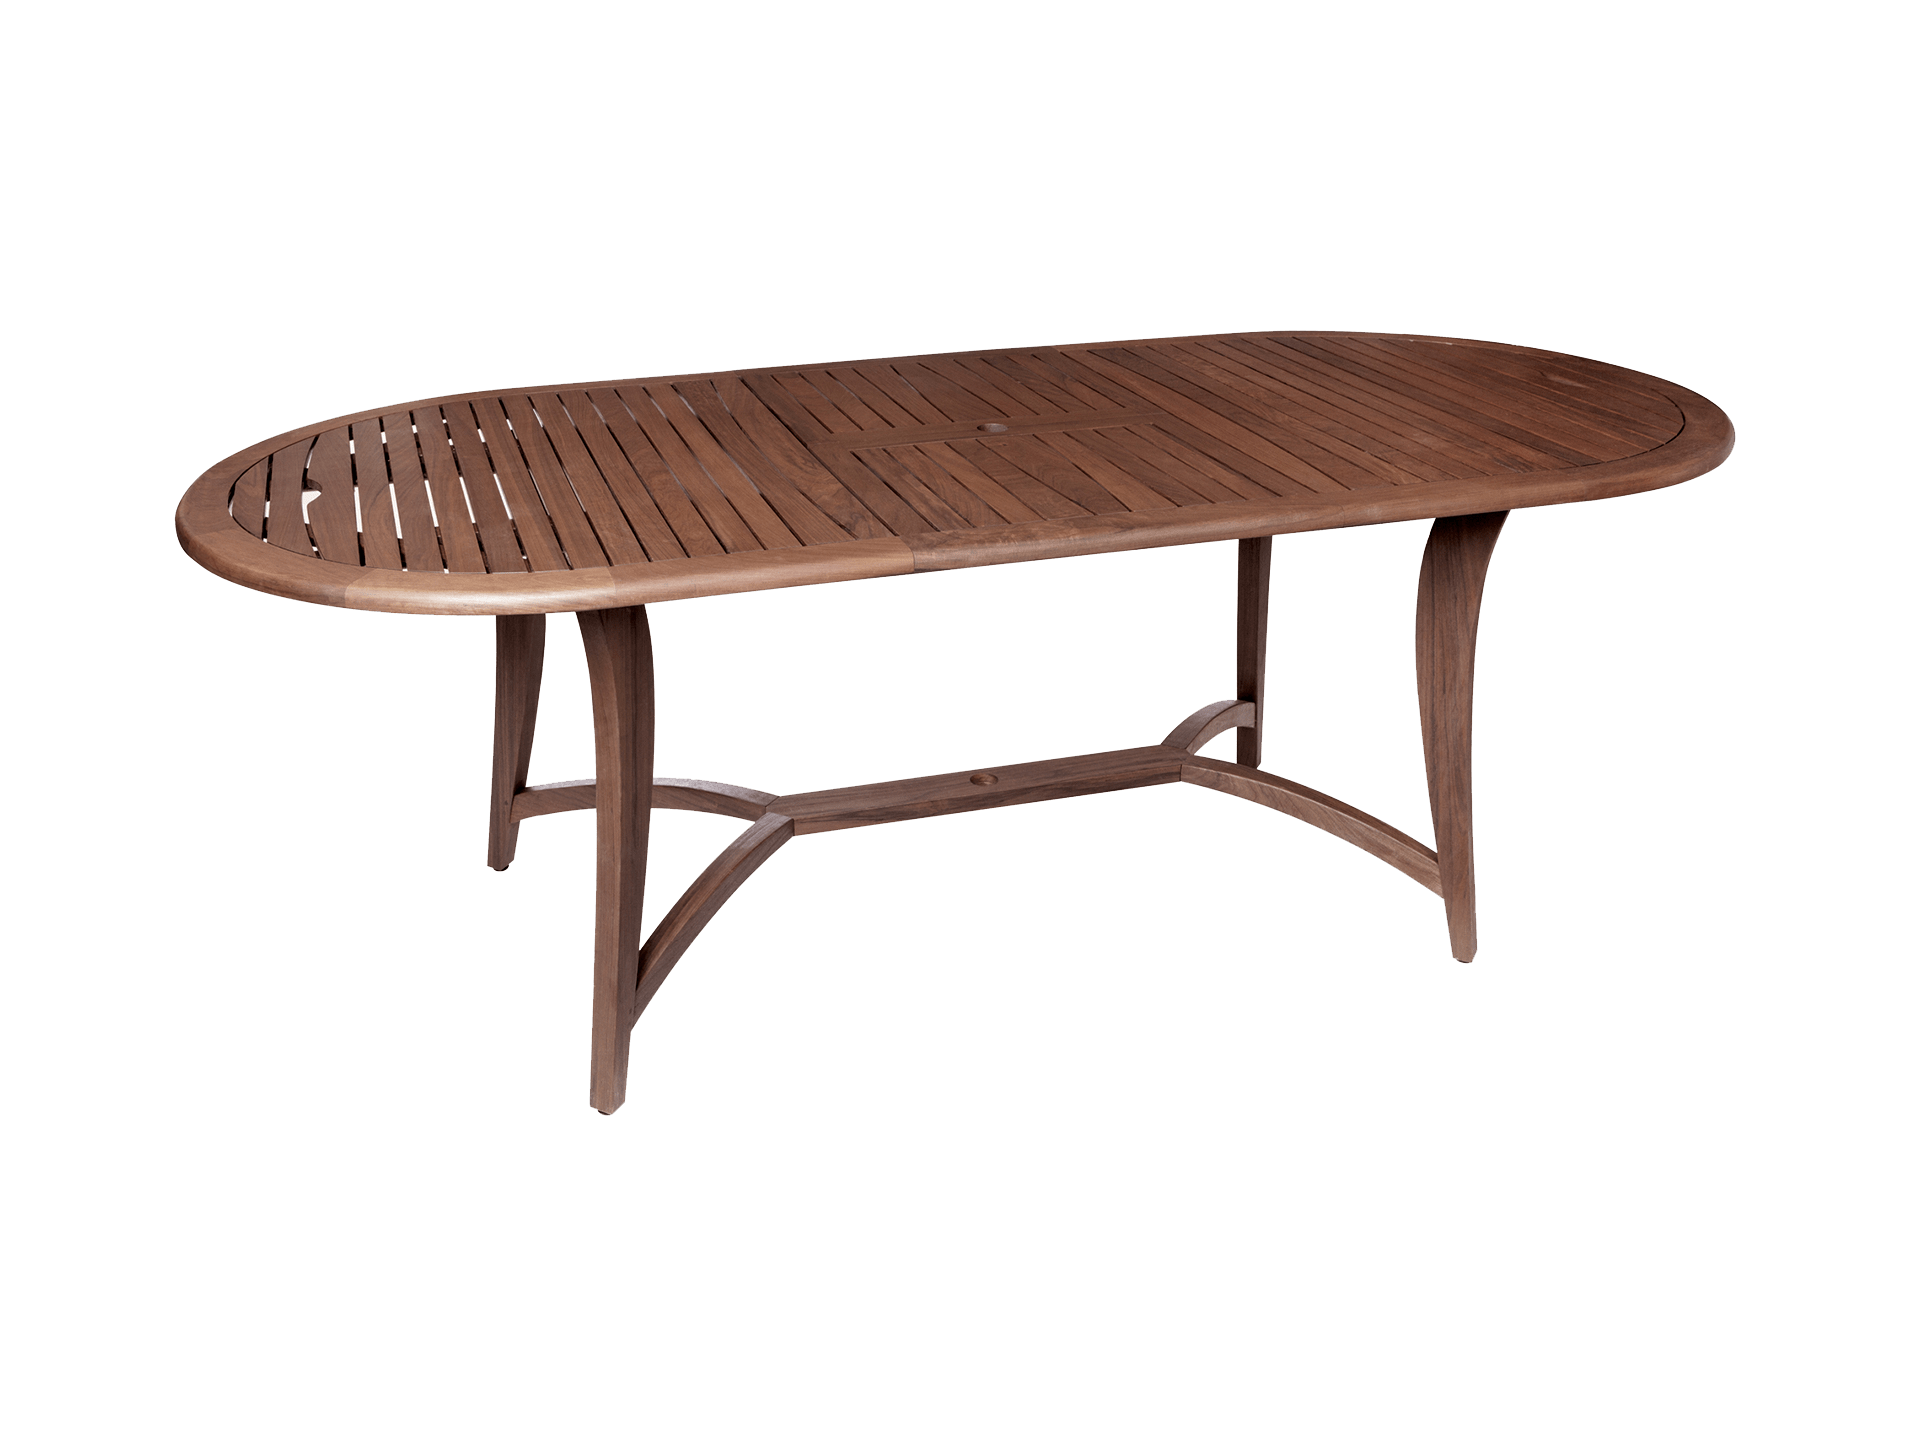 Topaz Oval Extension Table Jensen Leisure Furniture : 6477C from www.jensenleisurefurniture.com size 1920 x 1440 png 801kB